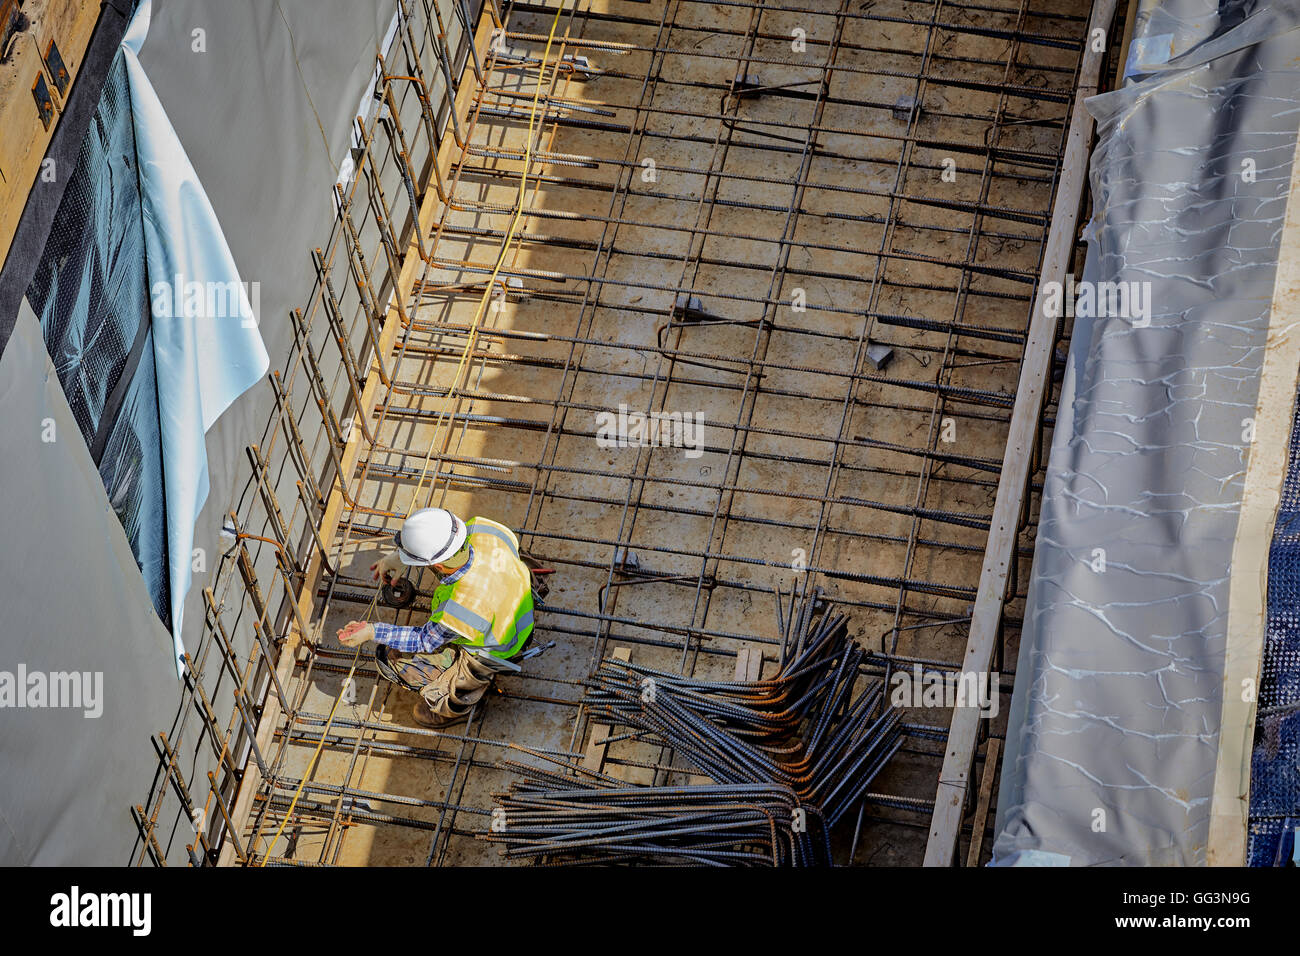 Construction Worker Laying Rebar And Wire For Concrete Basement Foundation